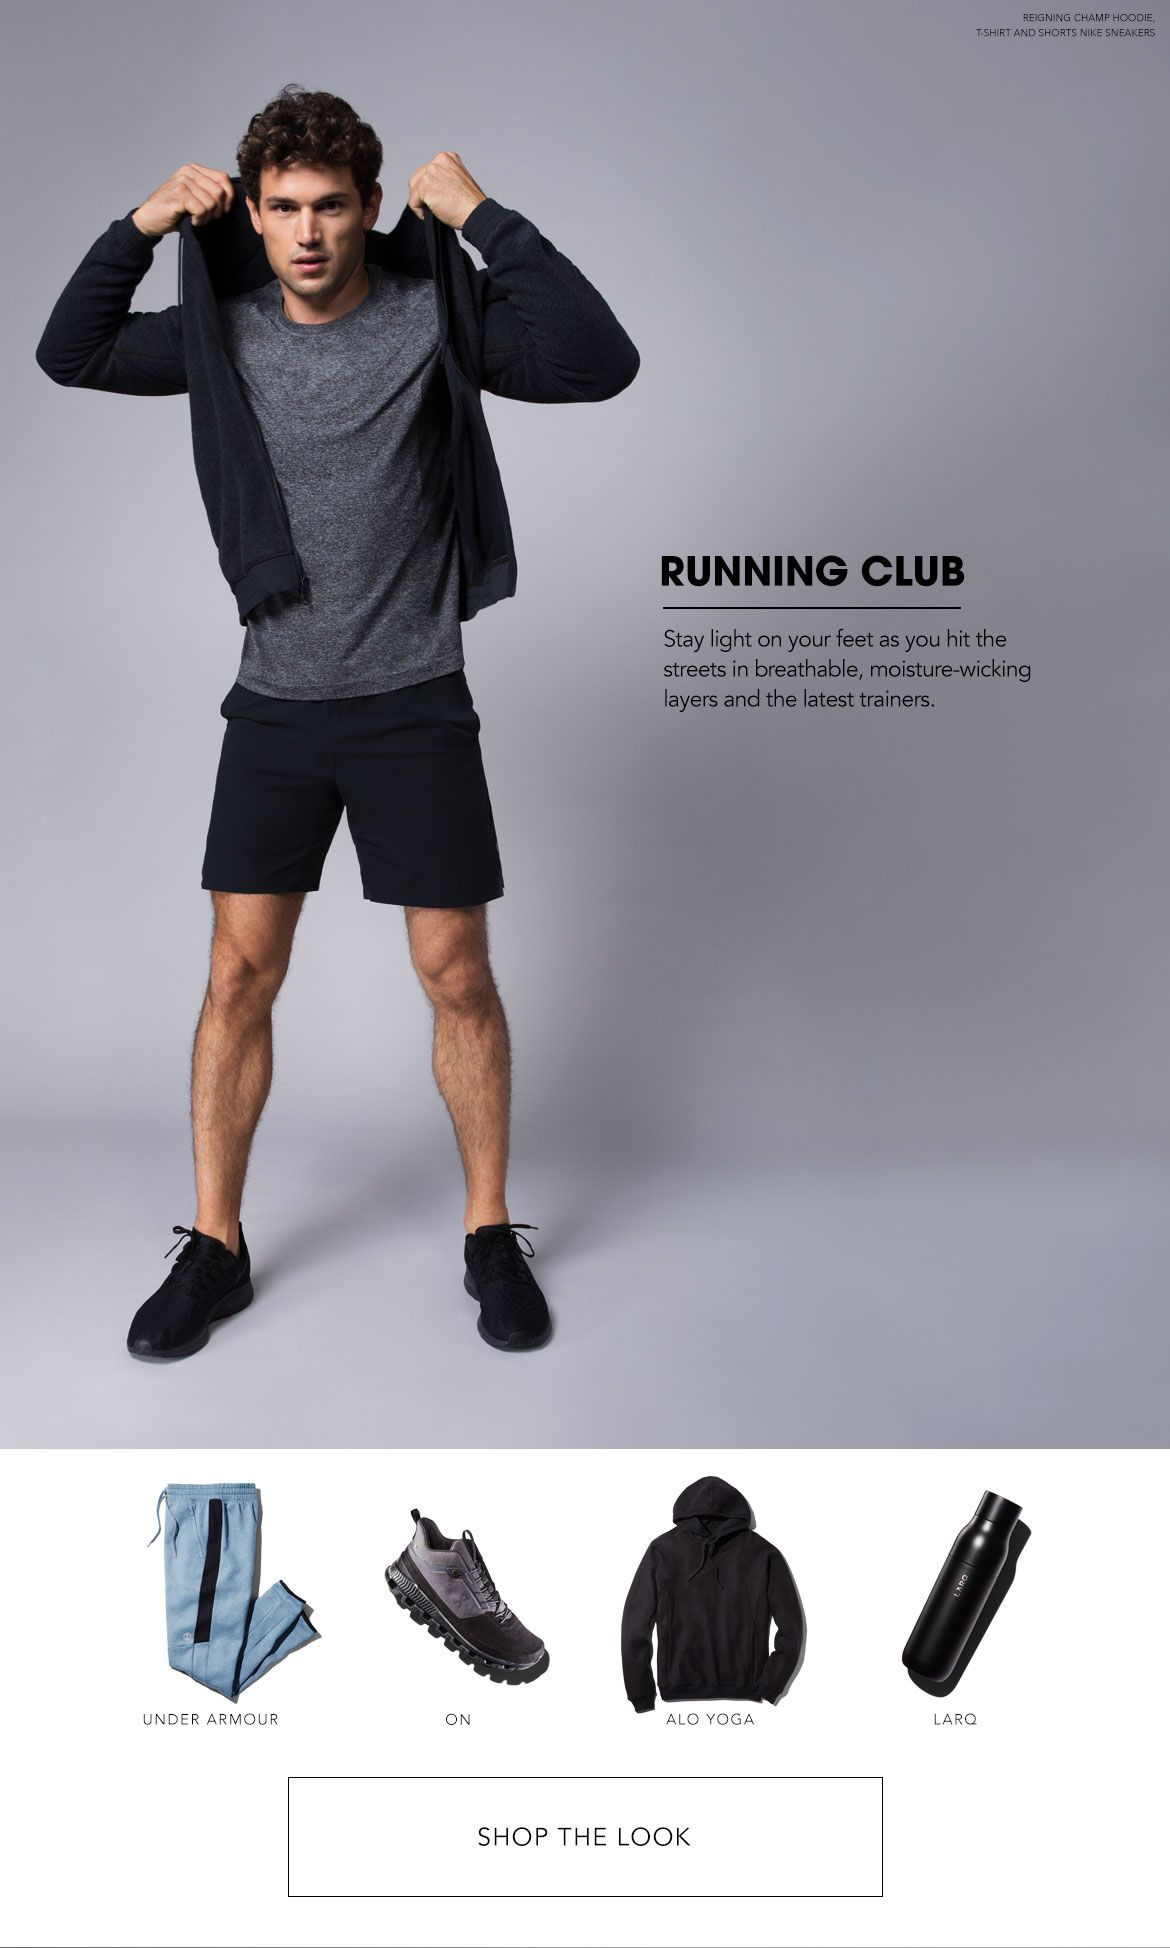 Styled for Running Club